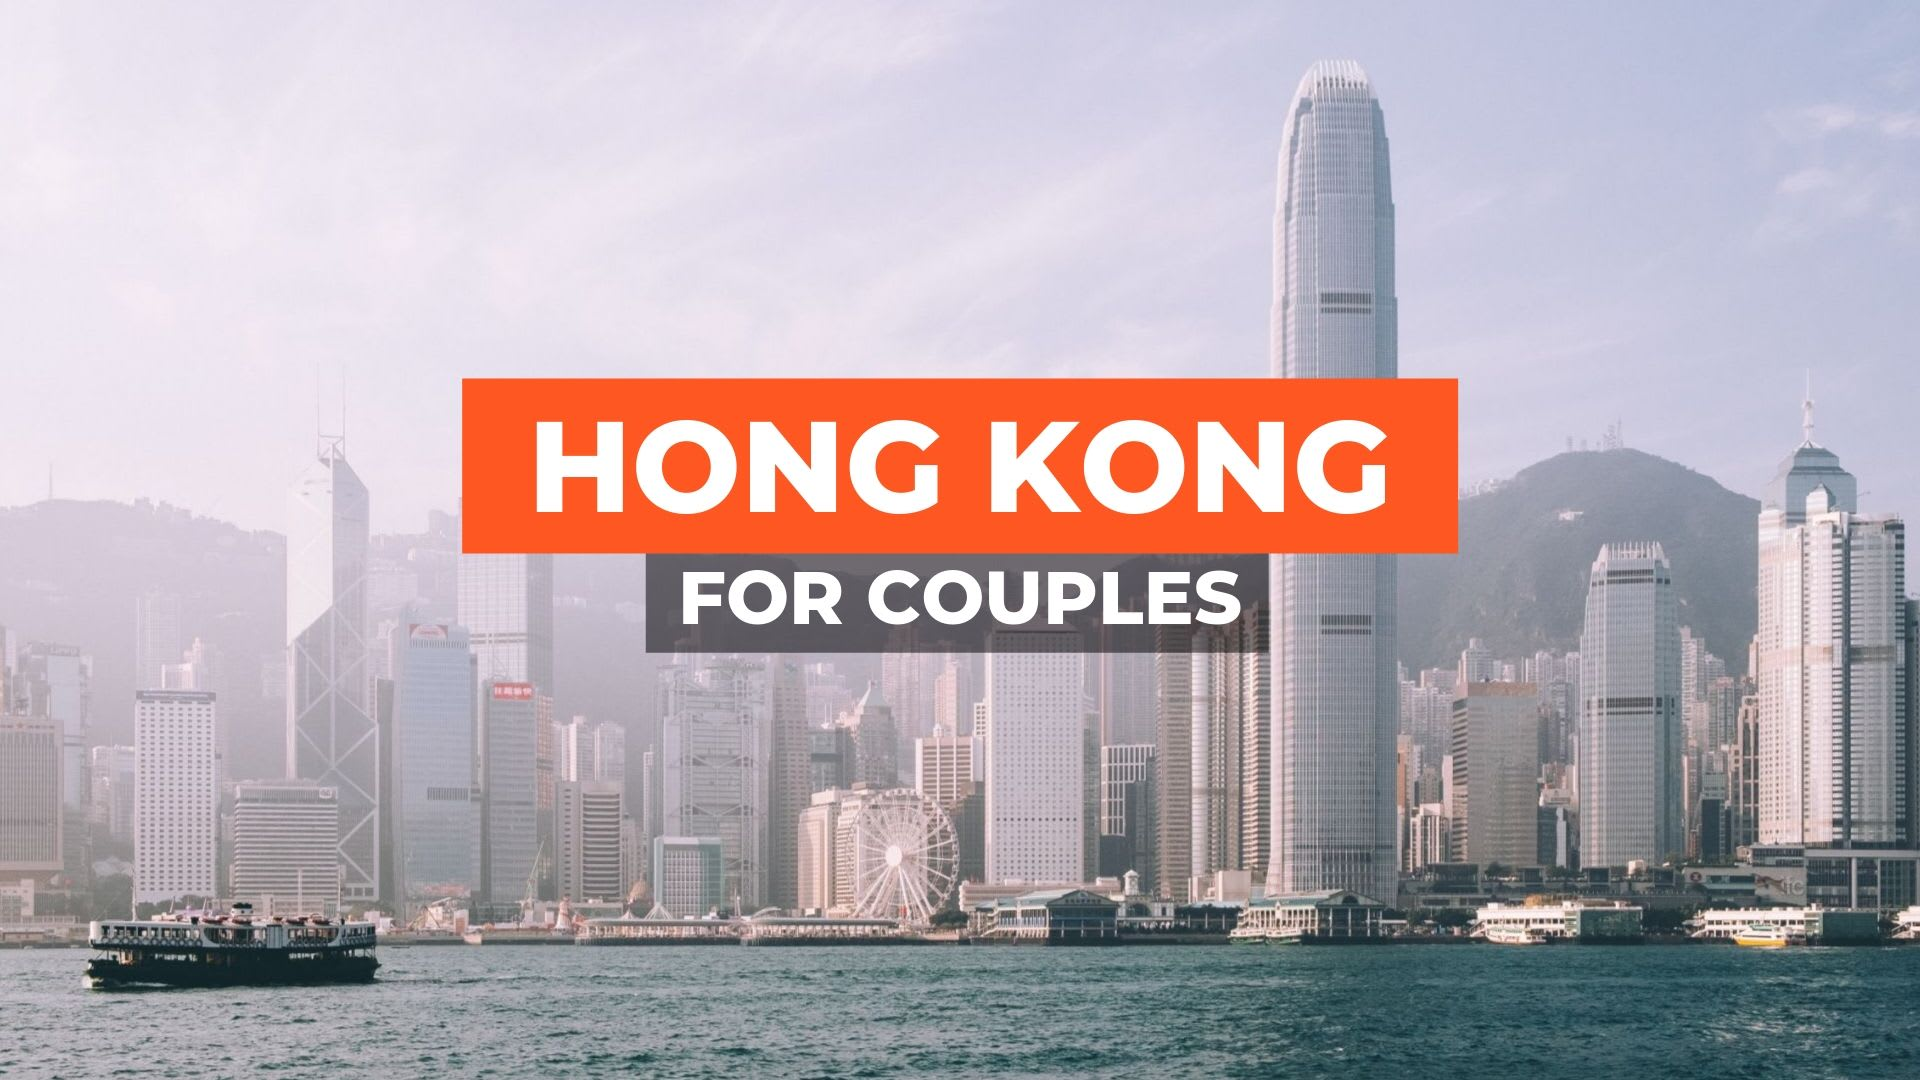 HONG KONG COUPLES